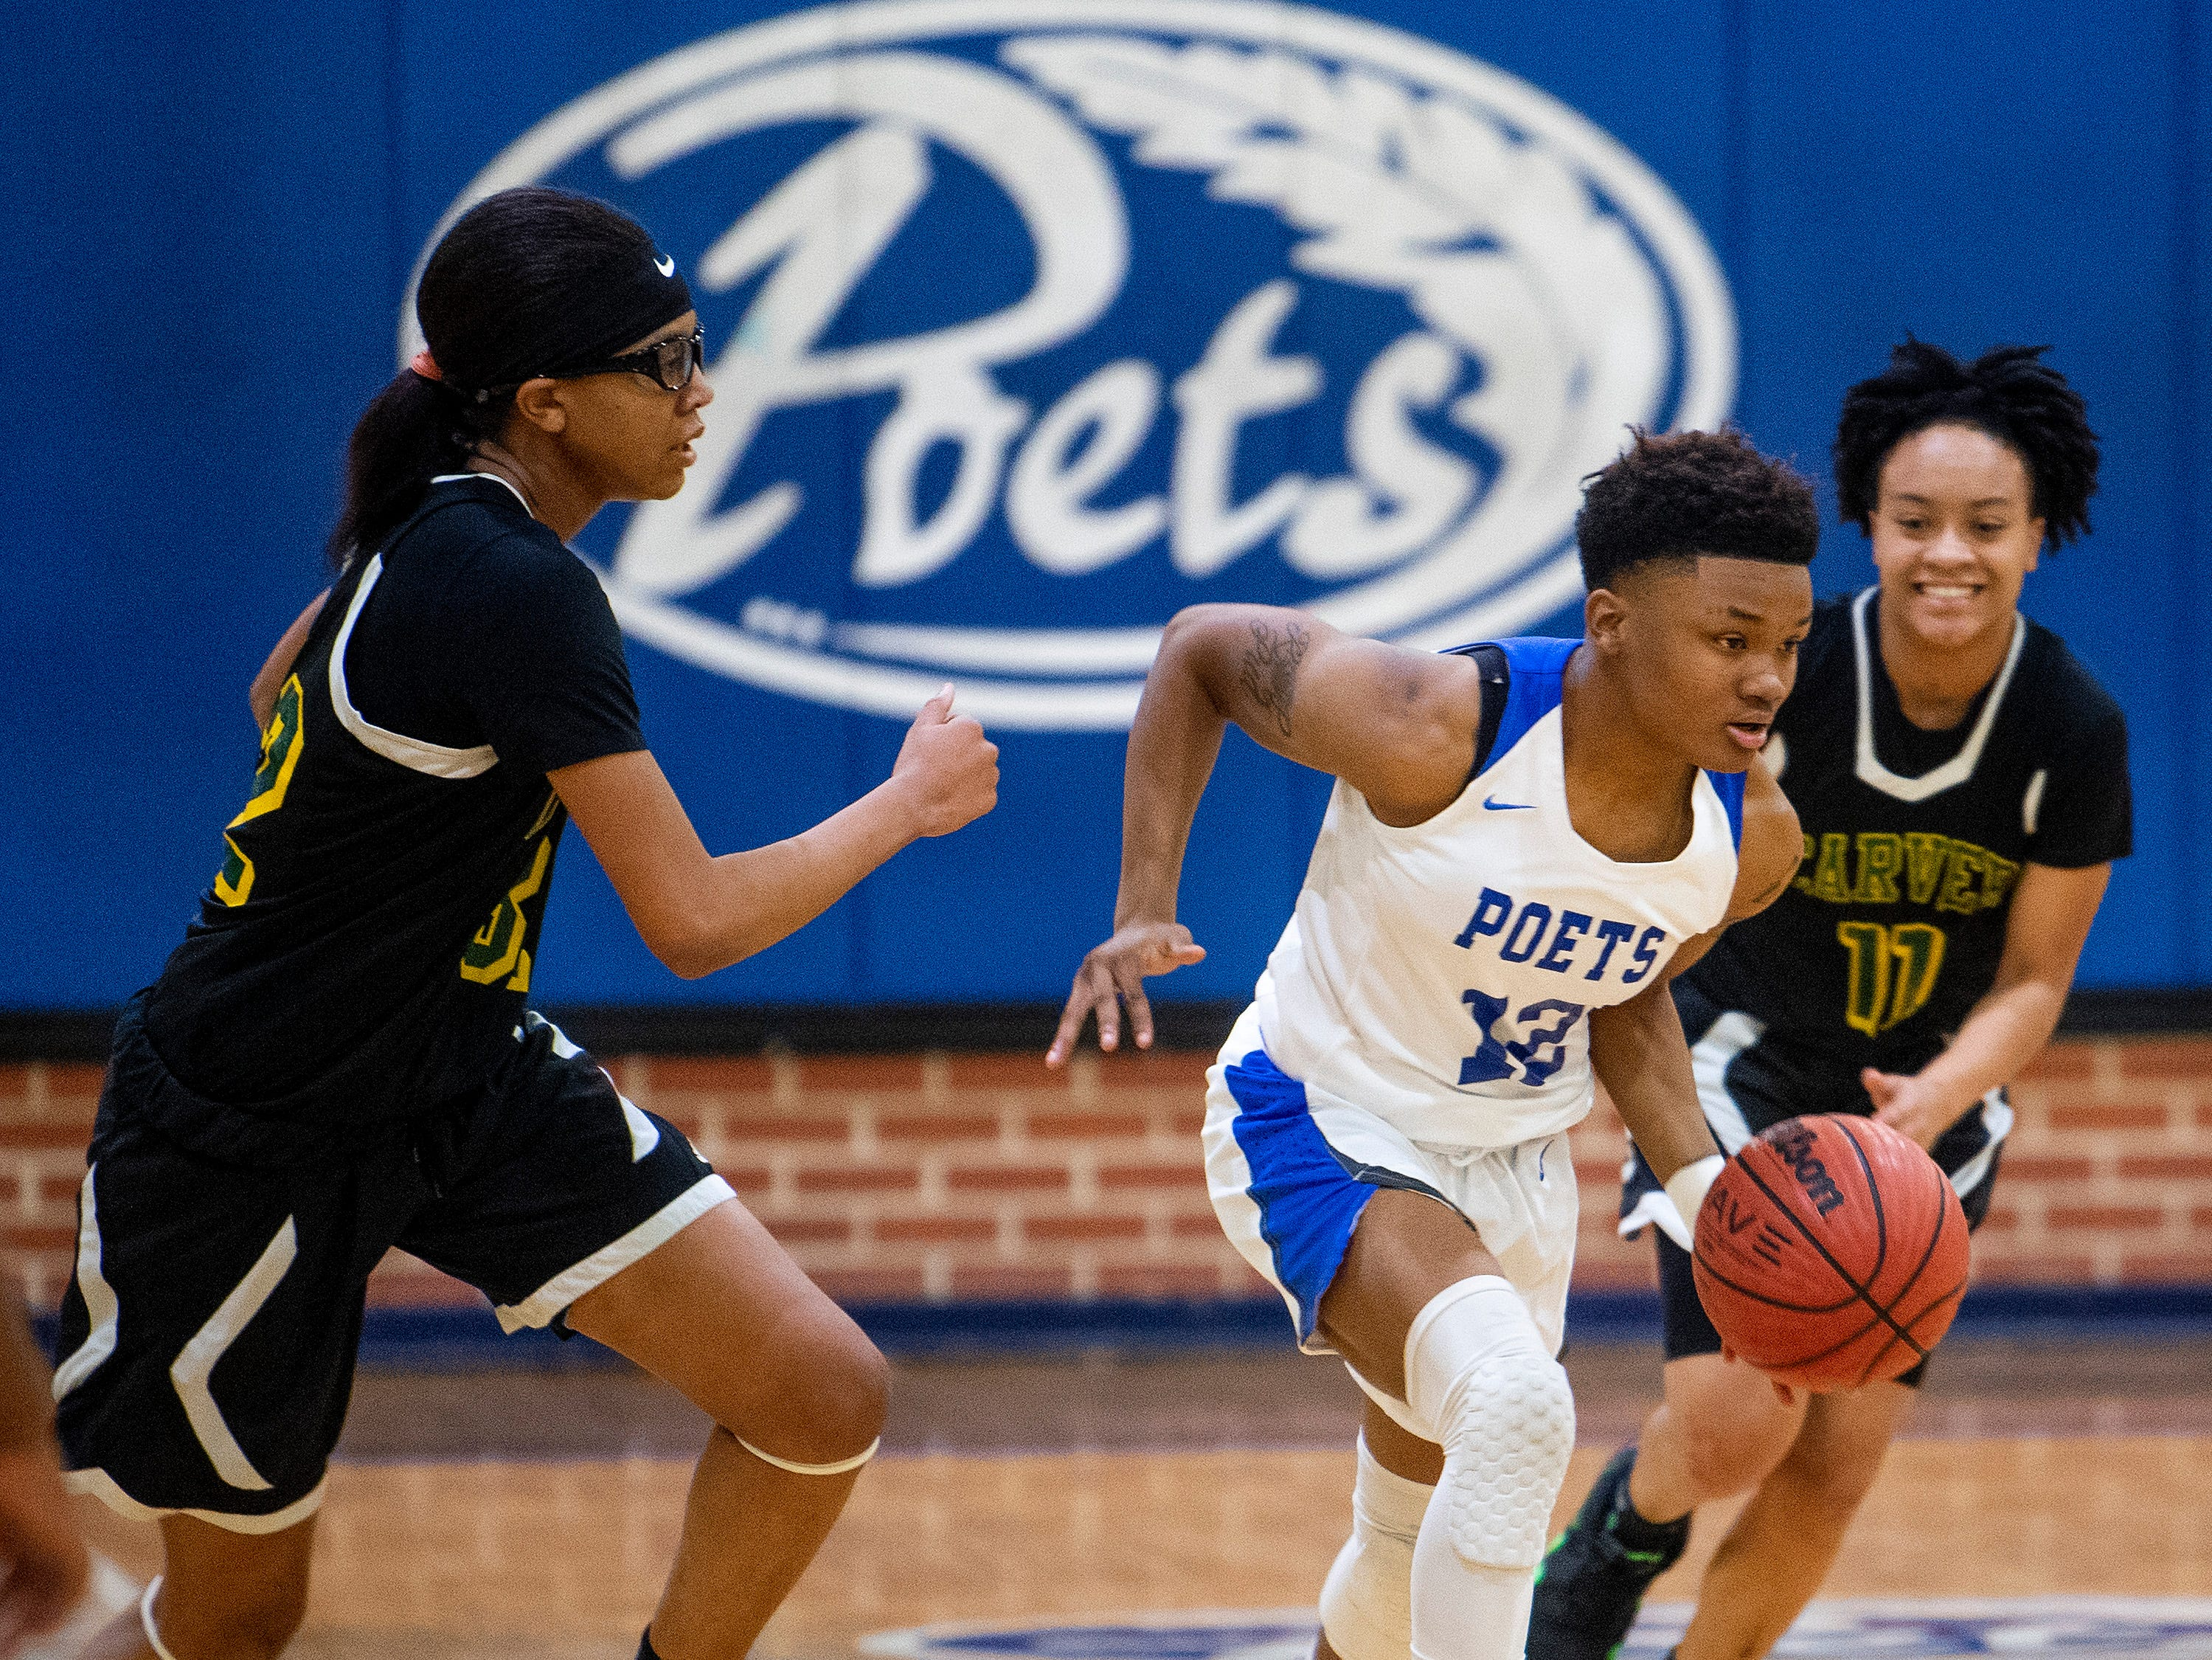 Lanier's Tynija Blue (12) against Carver at the Lanier campus in Montgomery, Ala., on Friday January 11, 2019.